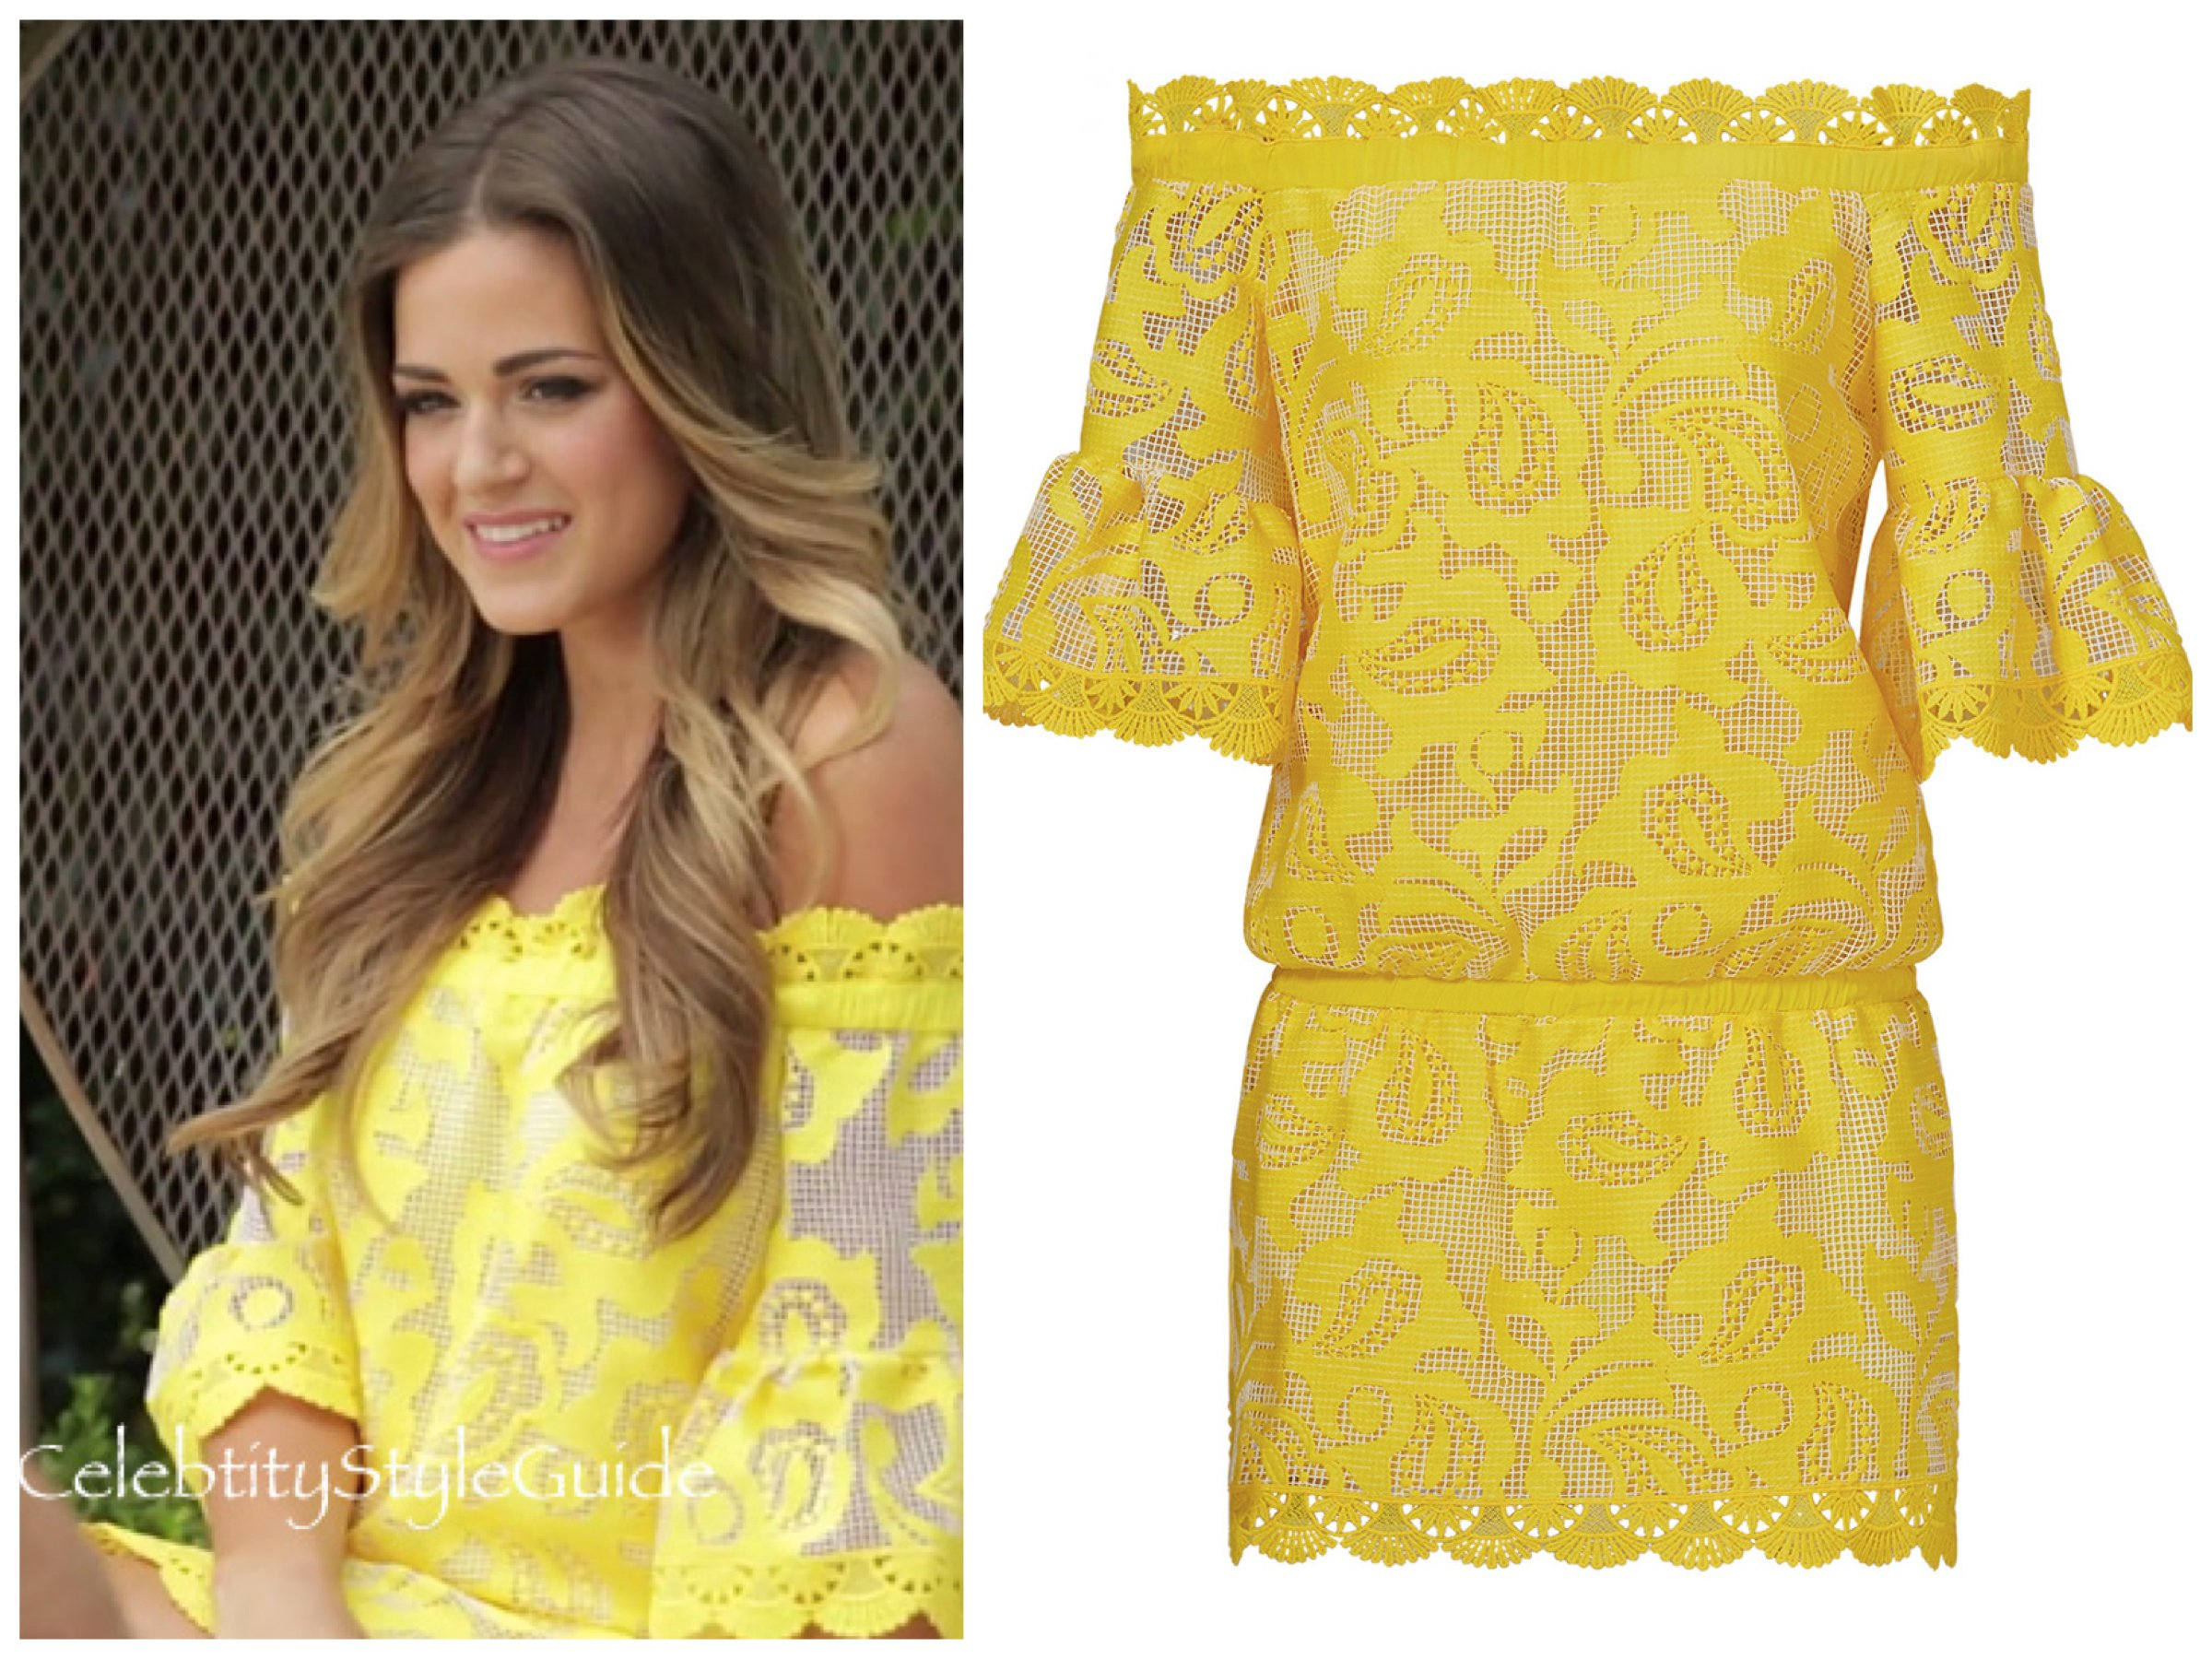 Bachelorette JoJo Fletcher in Alexis Yellow Lace Kit Dress, JoJo Fletcher's Bachelorette Looks